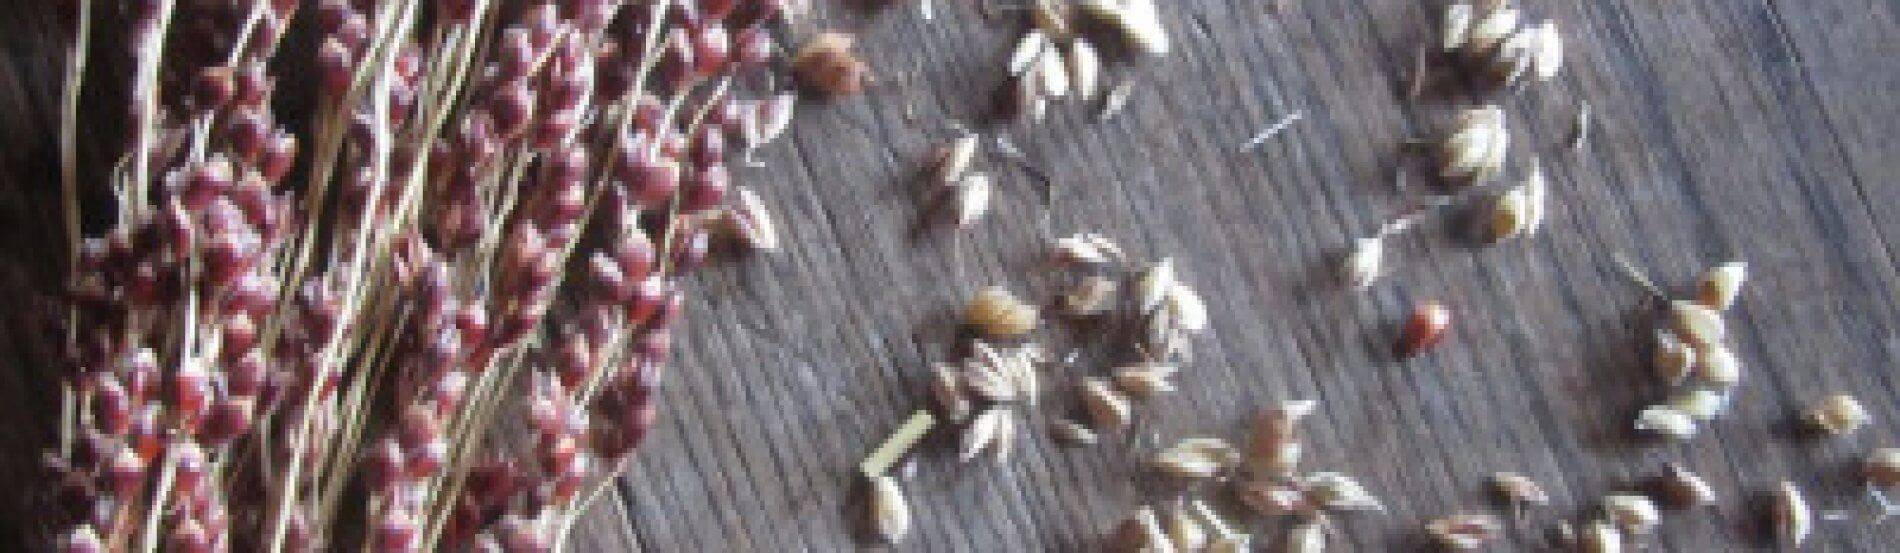 broomcorn seeds